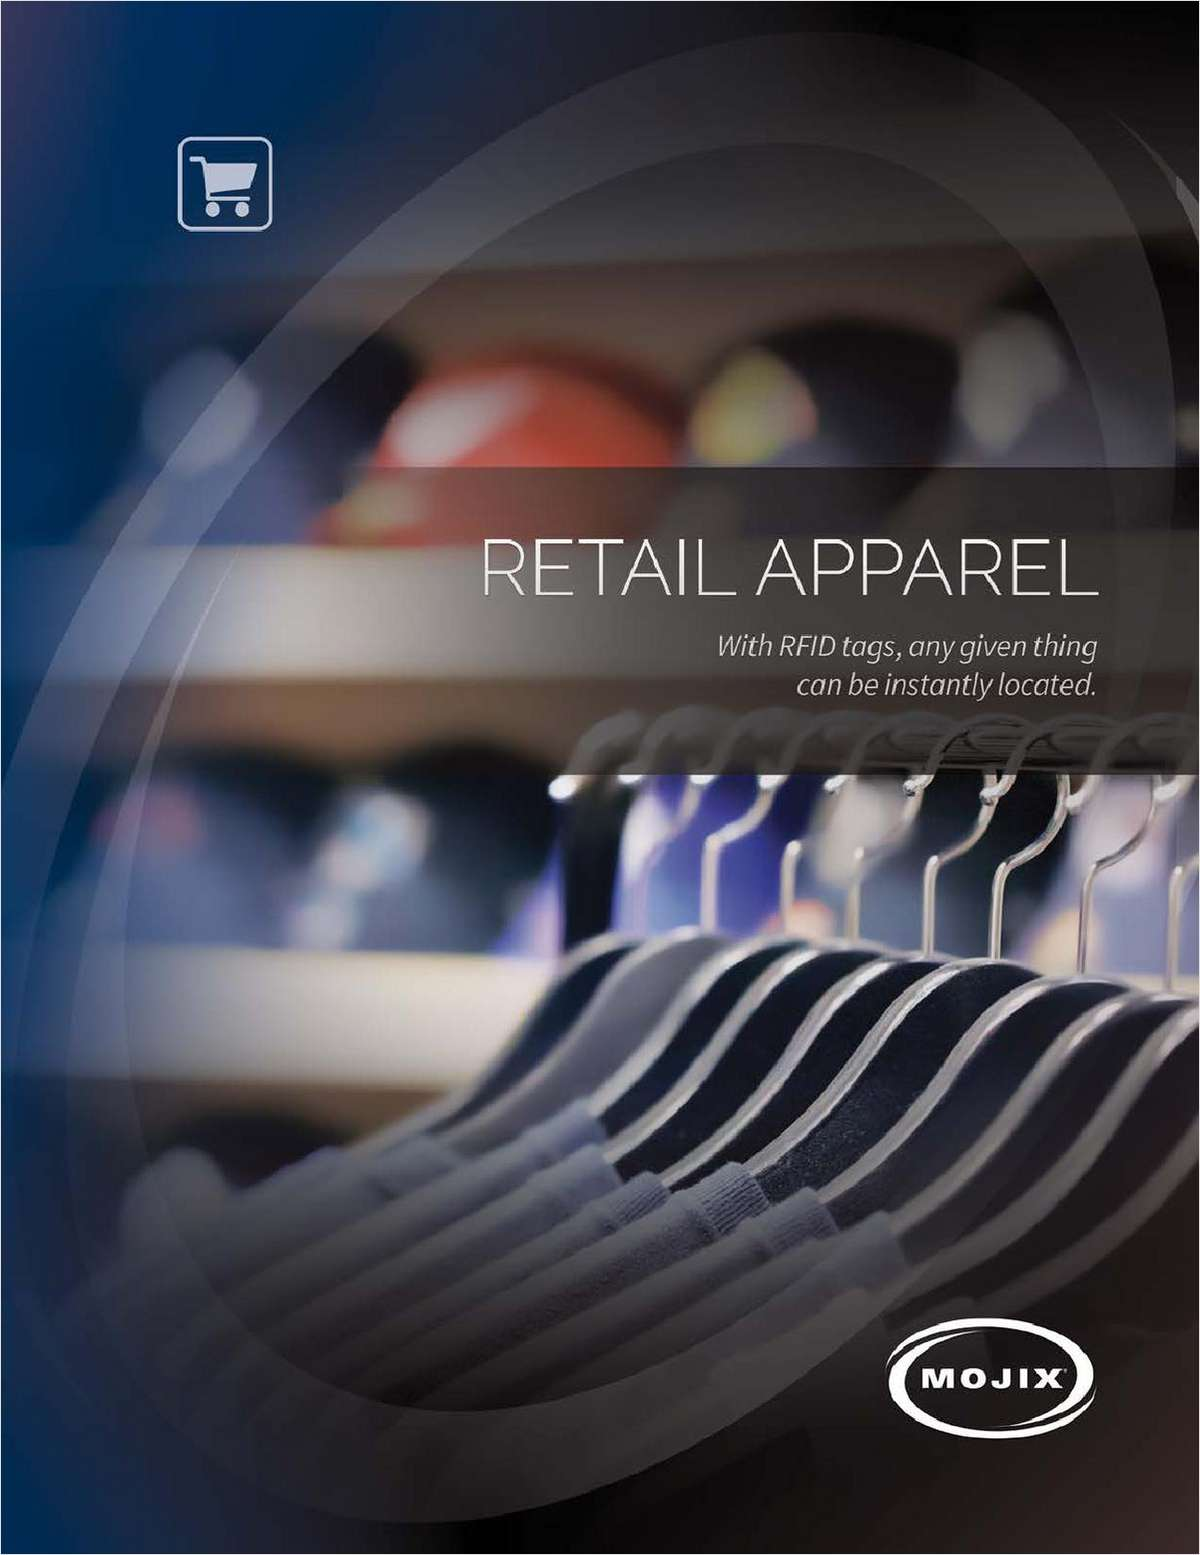 7 Minute Guide: Retail Apparel with RFID Inventory Management Solutions -- Maximizing Sales, Minimizing Losses, Full Visibility in Real-Time